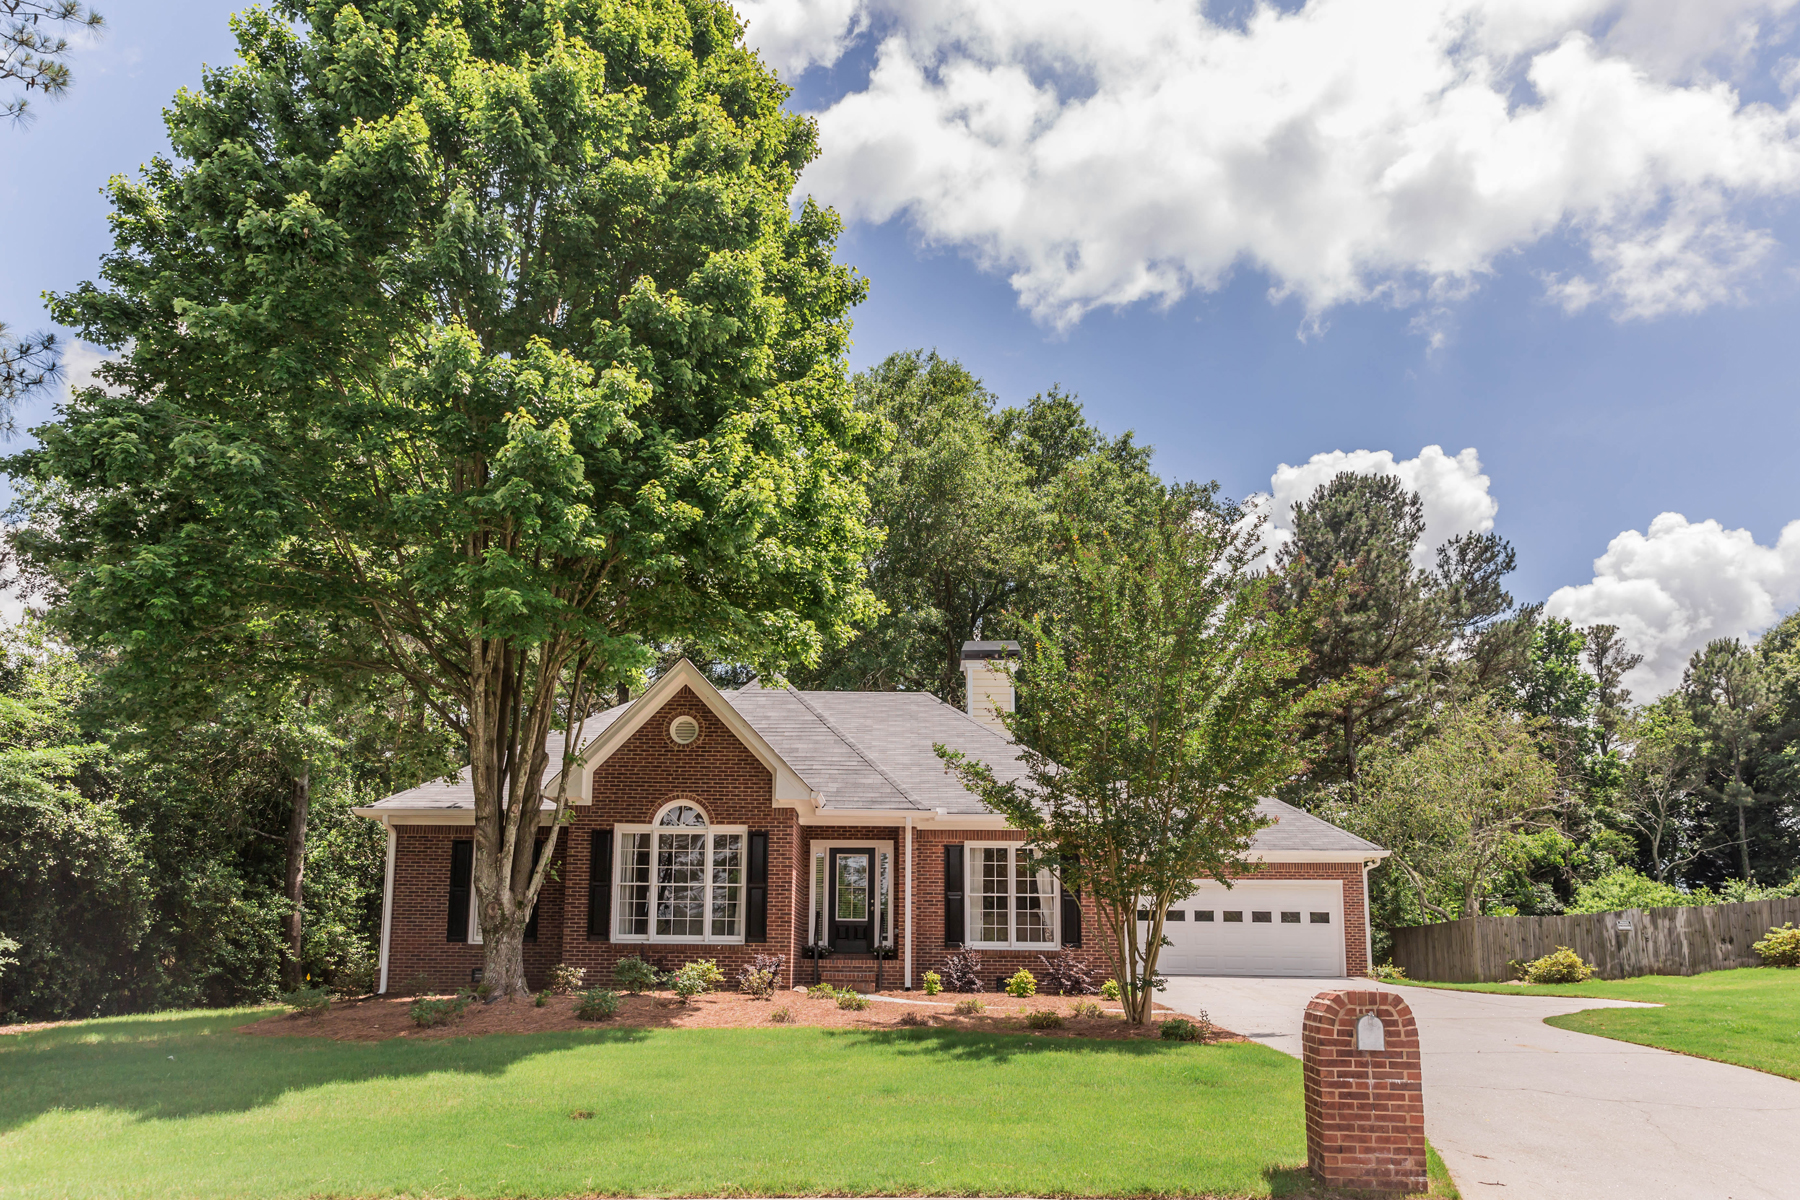 Single Family Home for Sale at Sought After Brick Ranch In Swim Tennis Community 322 Gates Mill Dr Lawrenceville, Georgia 30045 United States